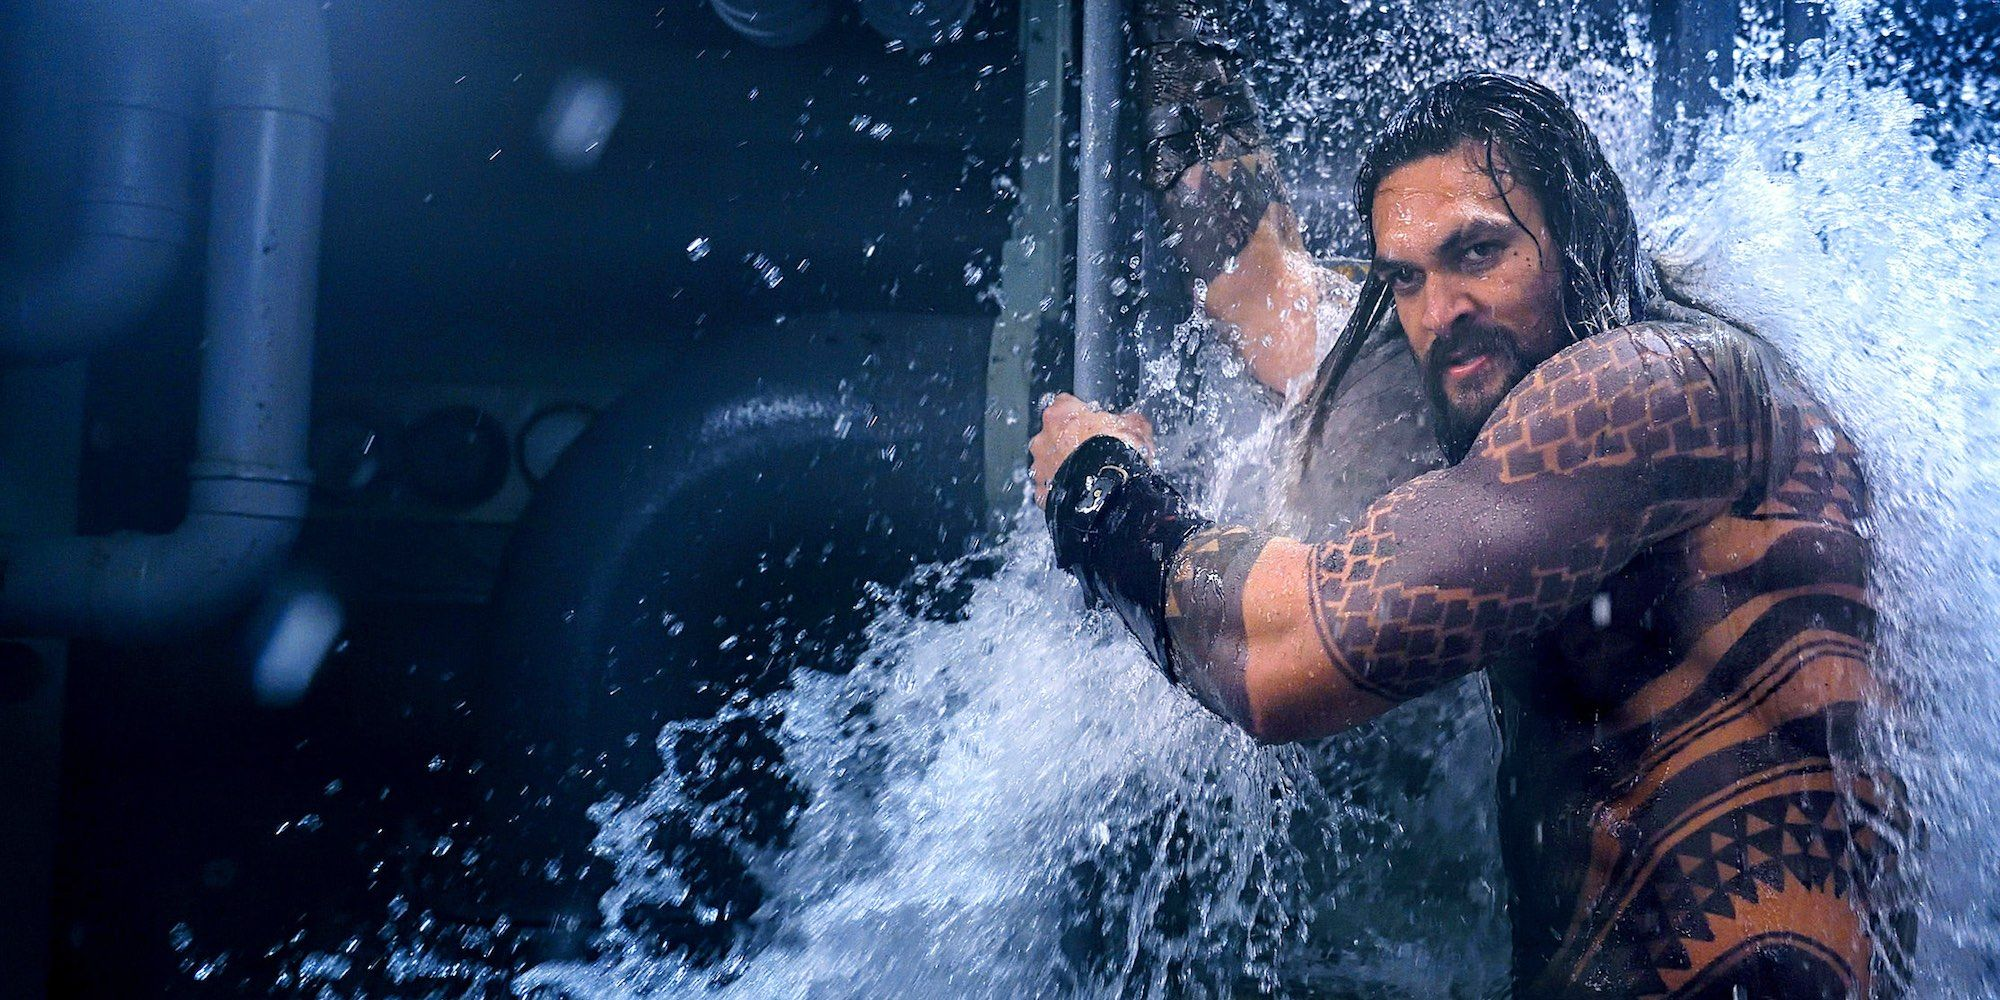 Aquaman Review: DC's Superhero Movie is a Wild & Goofy Ride